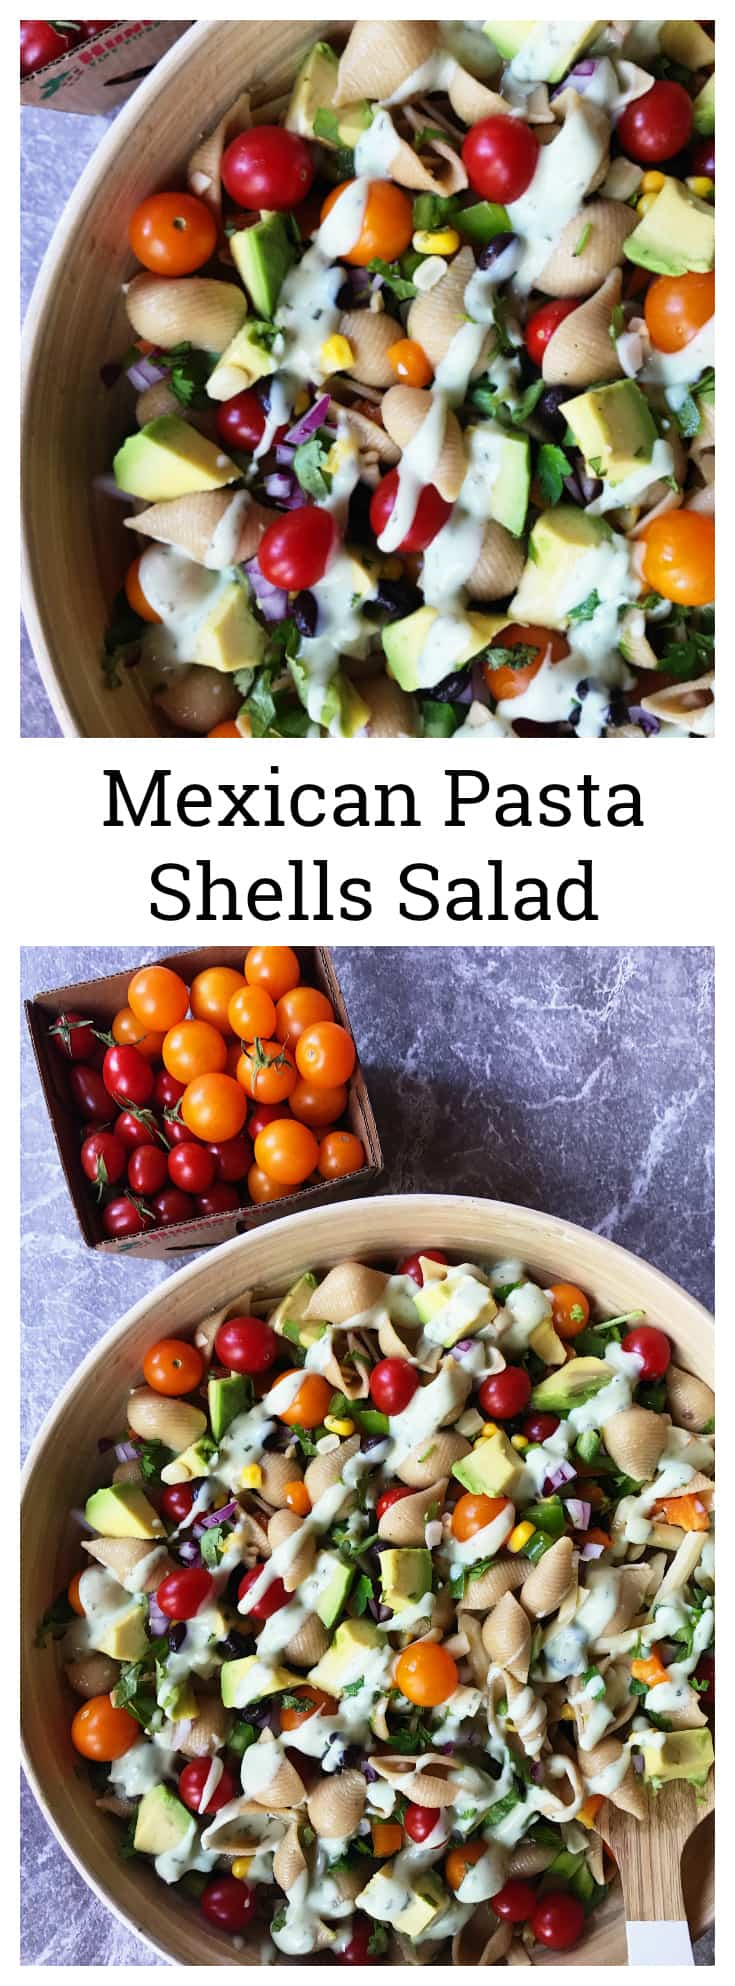 Mexican Pasta Shells Salad Recipe